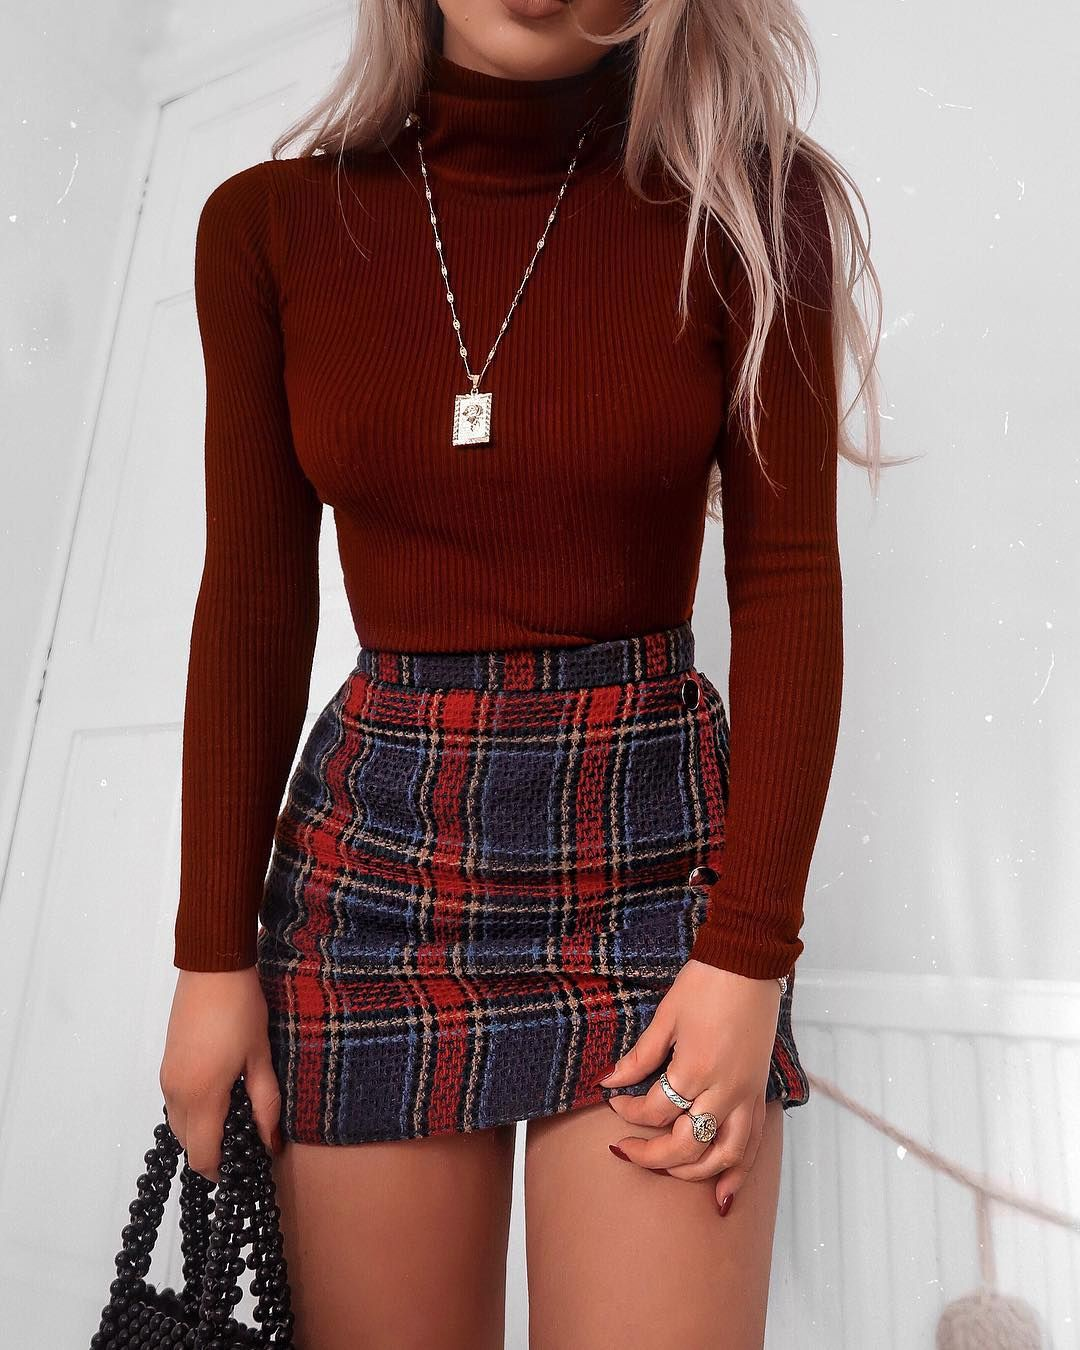 Casual wear Cute outfits for girls